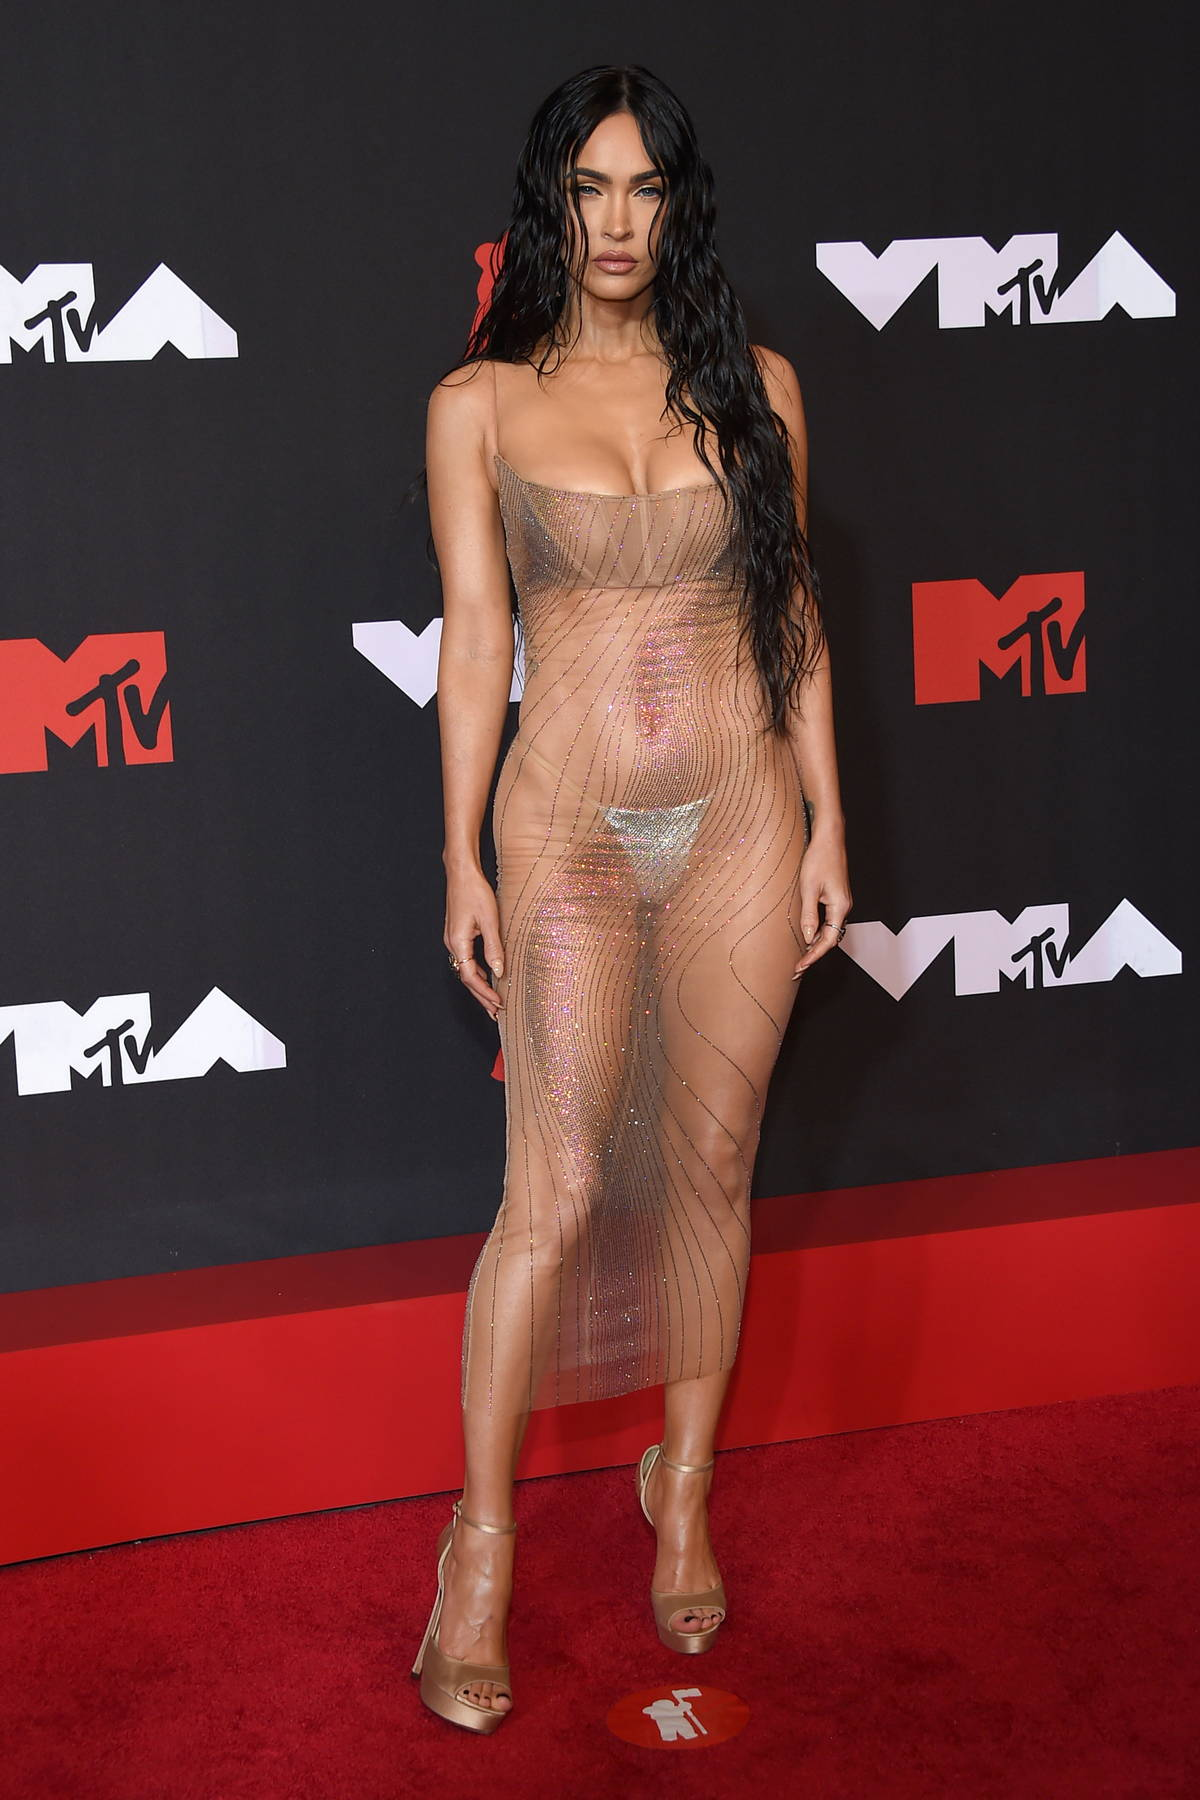 Megan Fox attends the 2021 MTV Video Music Awards at Barclays Center in Brooklyn, New York City